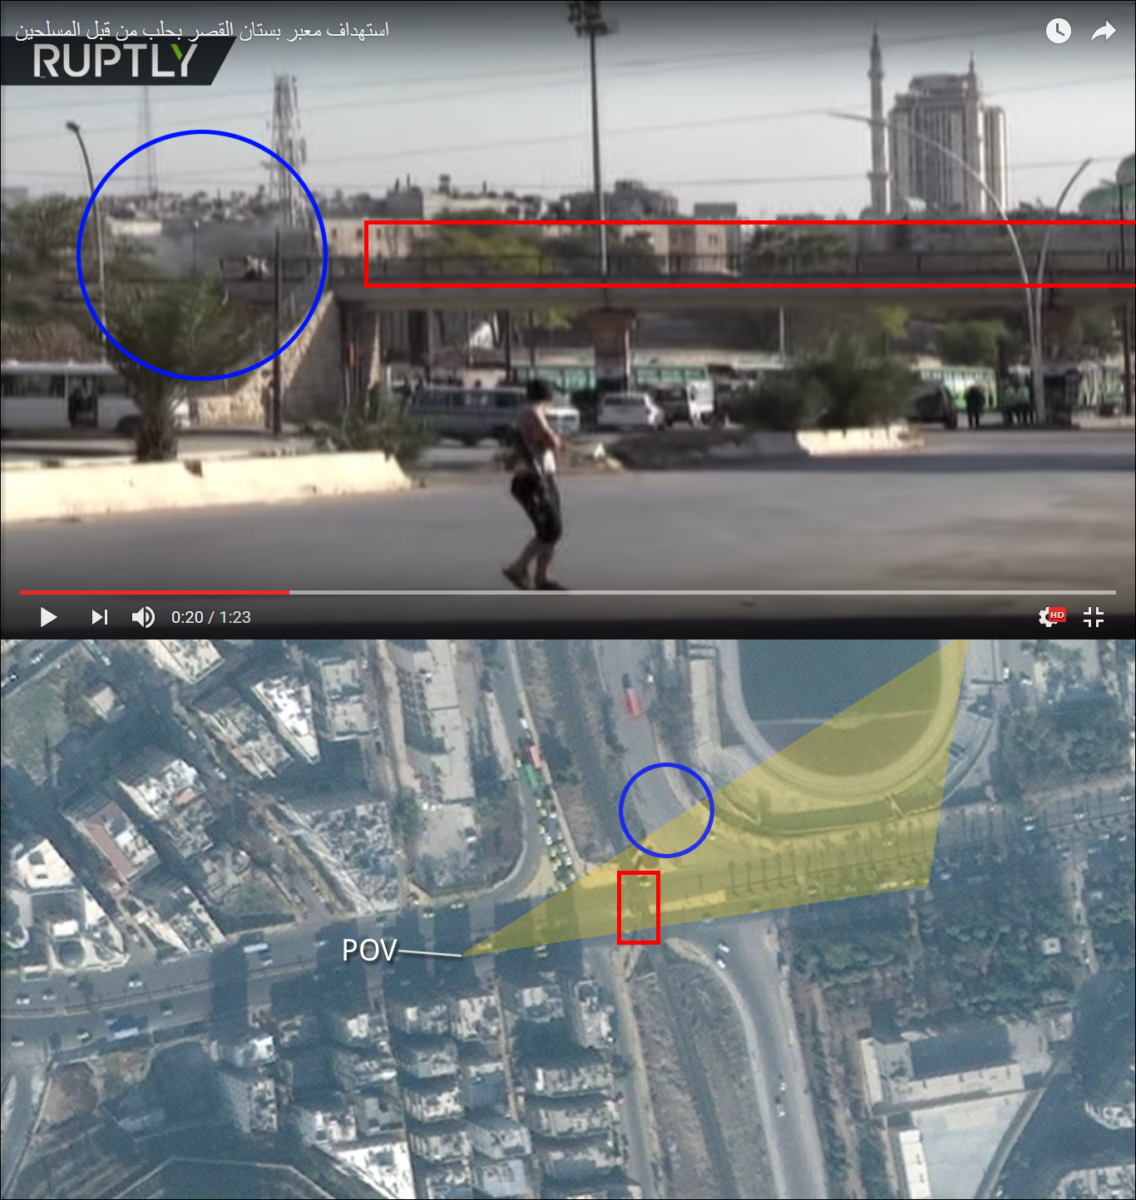 Figure 10 — The approximate location of the second plume of smoke is circled in blue, somewhere down the the west side of the Kher Eddin al-Assadi street.